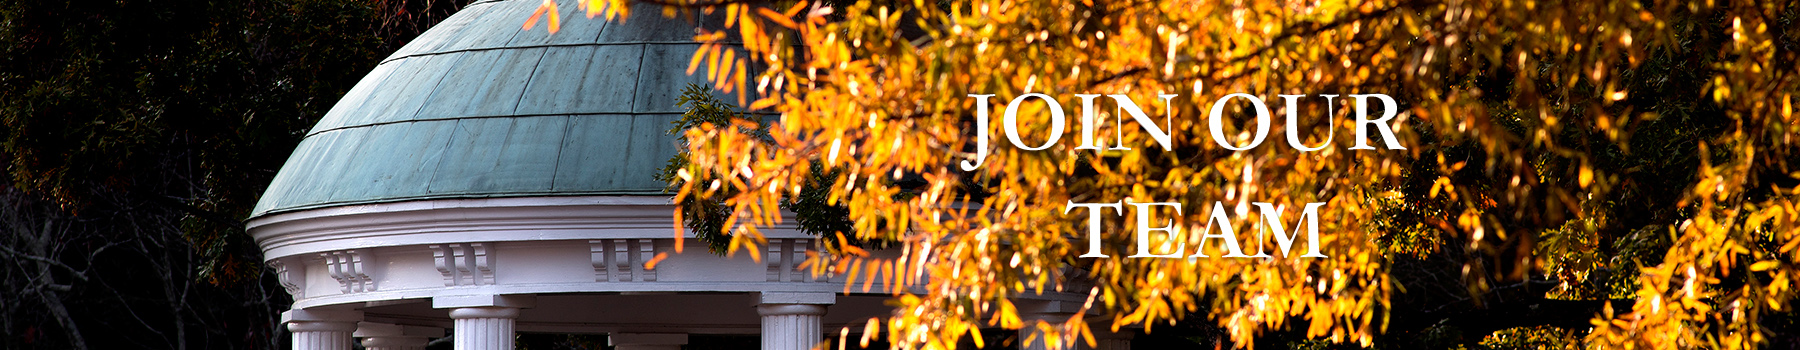 Join our team: Apply for jobs at UNC Psychology and Neuroscience!